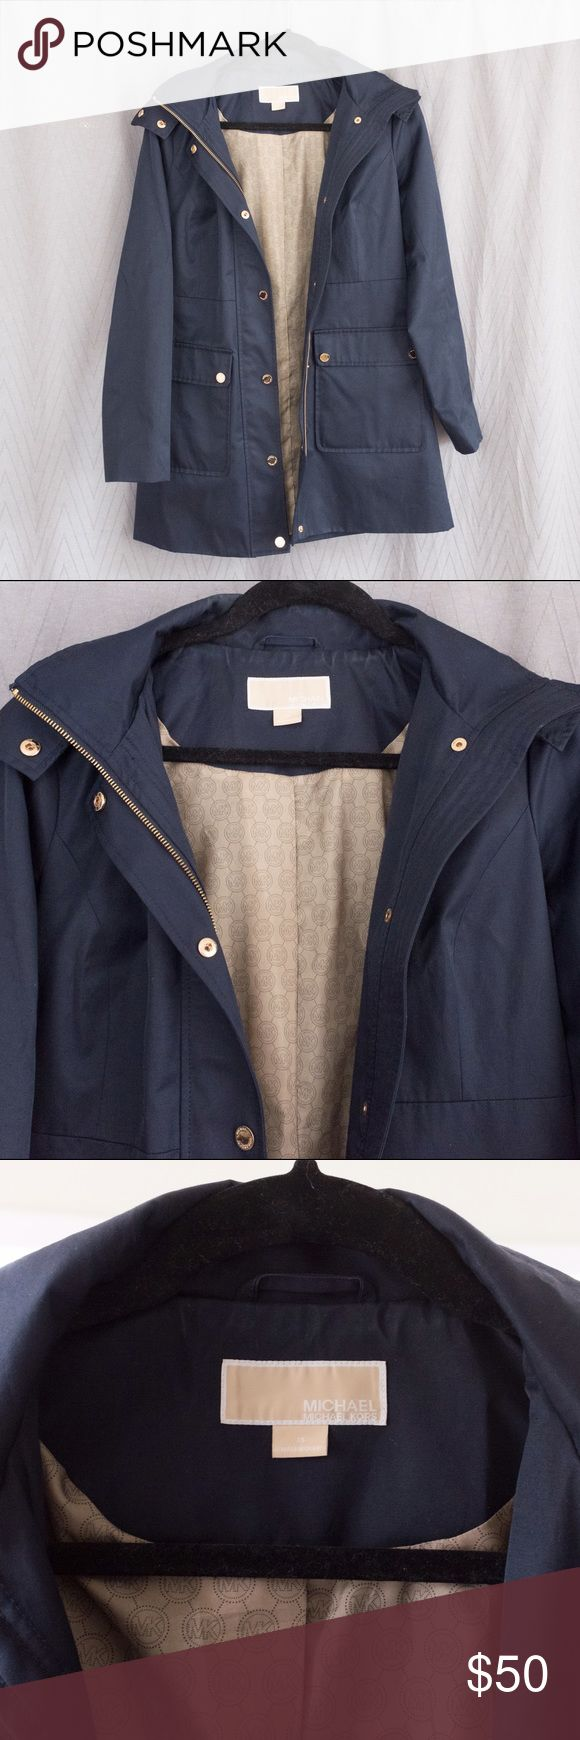 Michael Kors Navy Blue Parka XS Hooded Navy Blue Parka with gold zipper and button detailing, two front pockets, removable hood; Good condition MICHAEL Michael Kors Jackets & Coats Utility Jackets